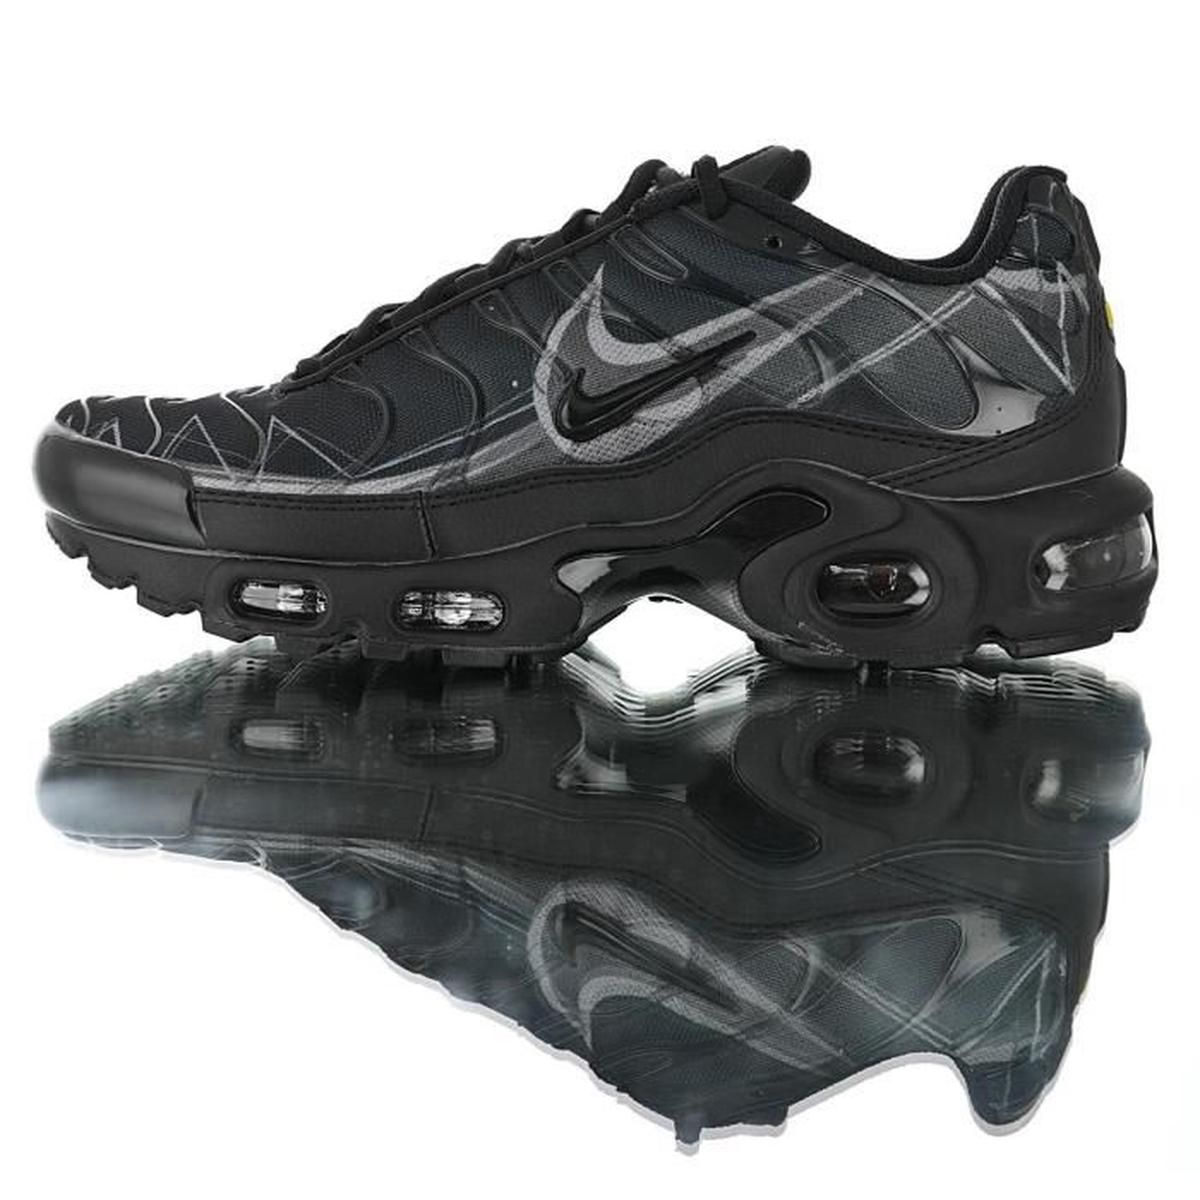 prix tn nike - 64% OFF - Free delivery - zephyrtoys.in